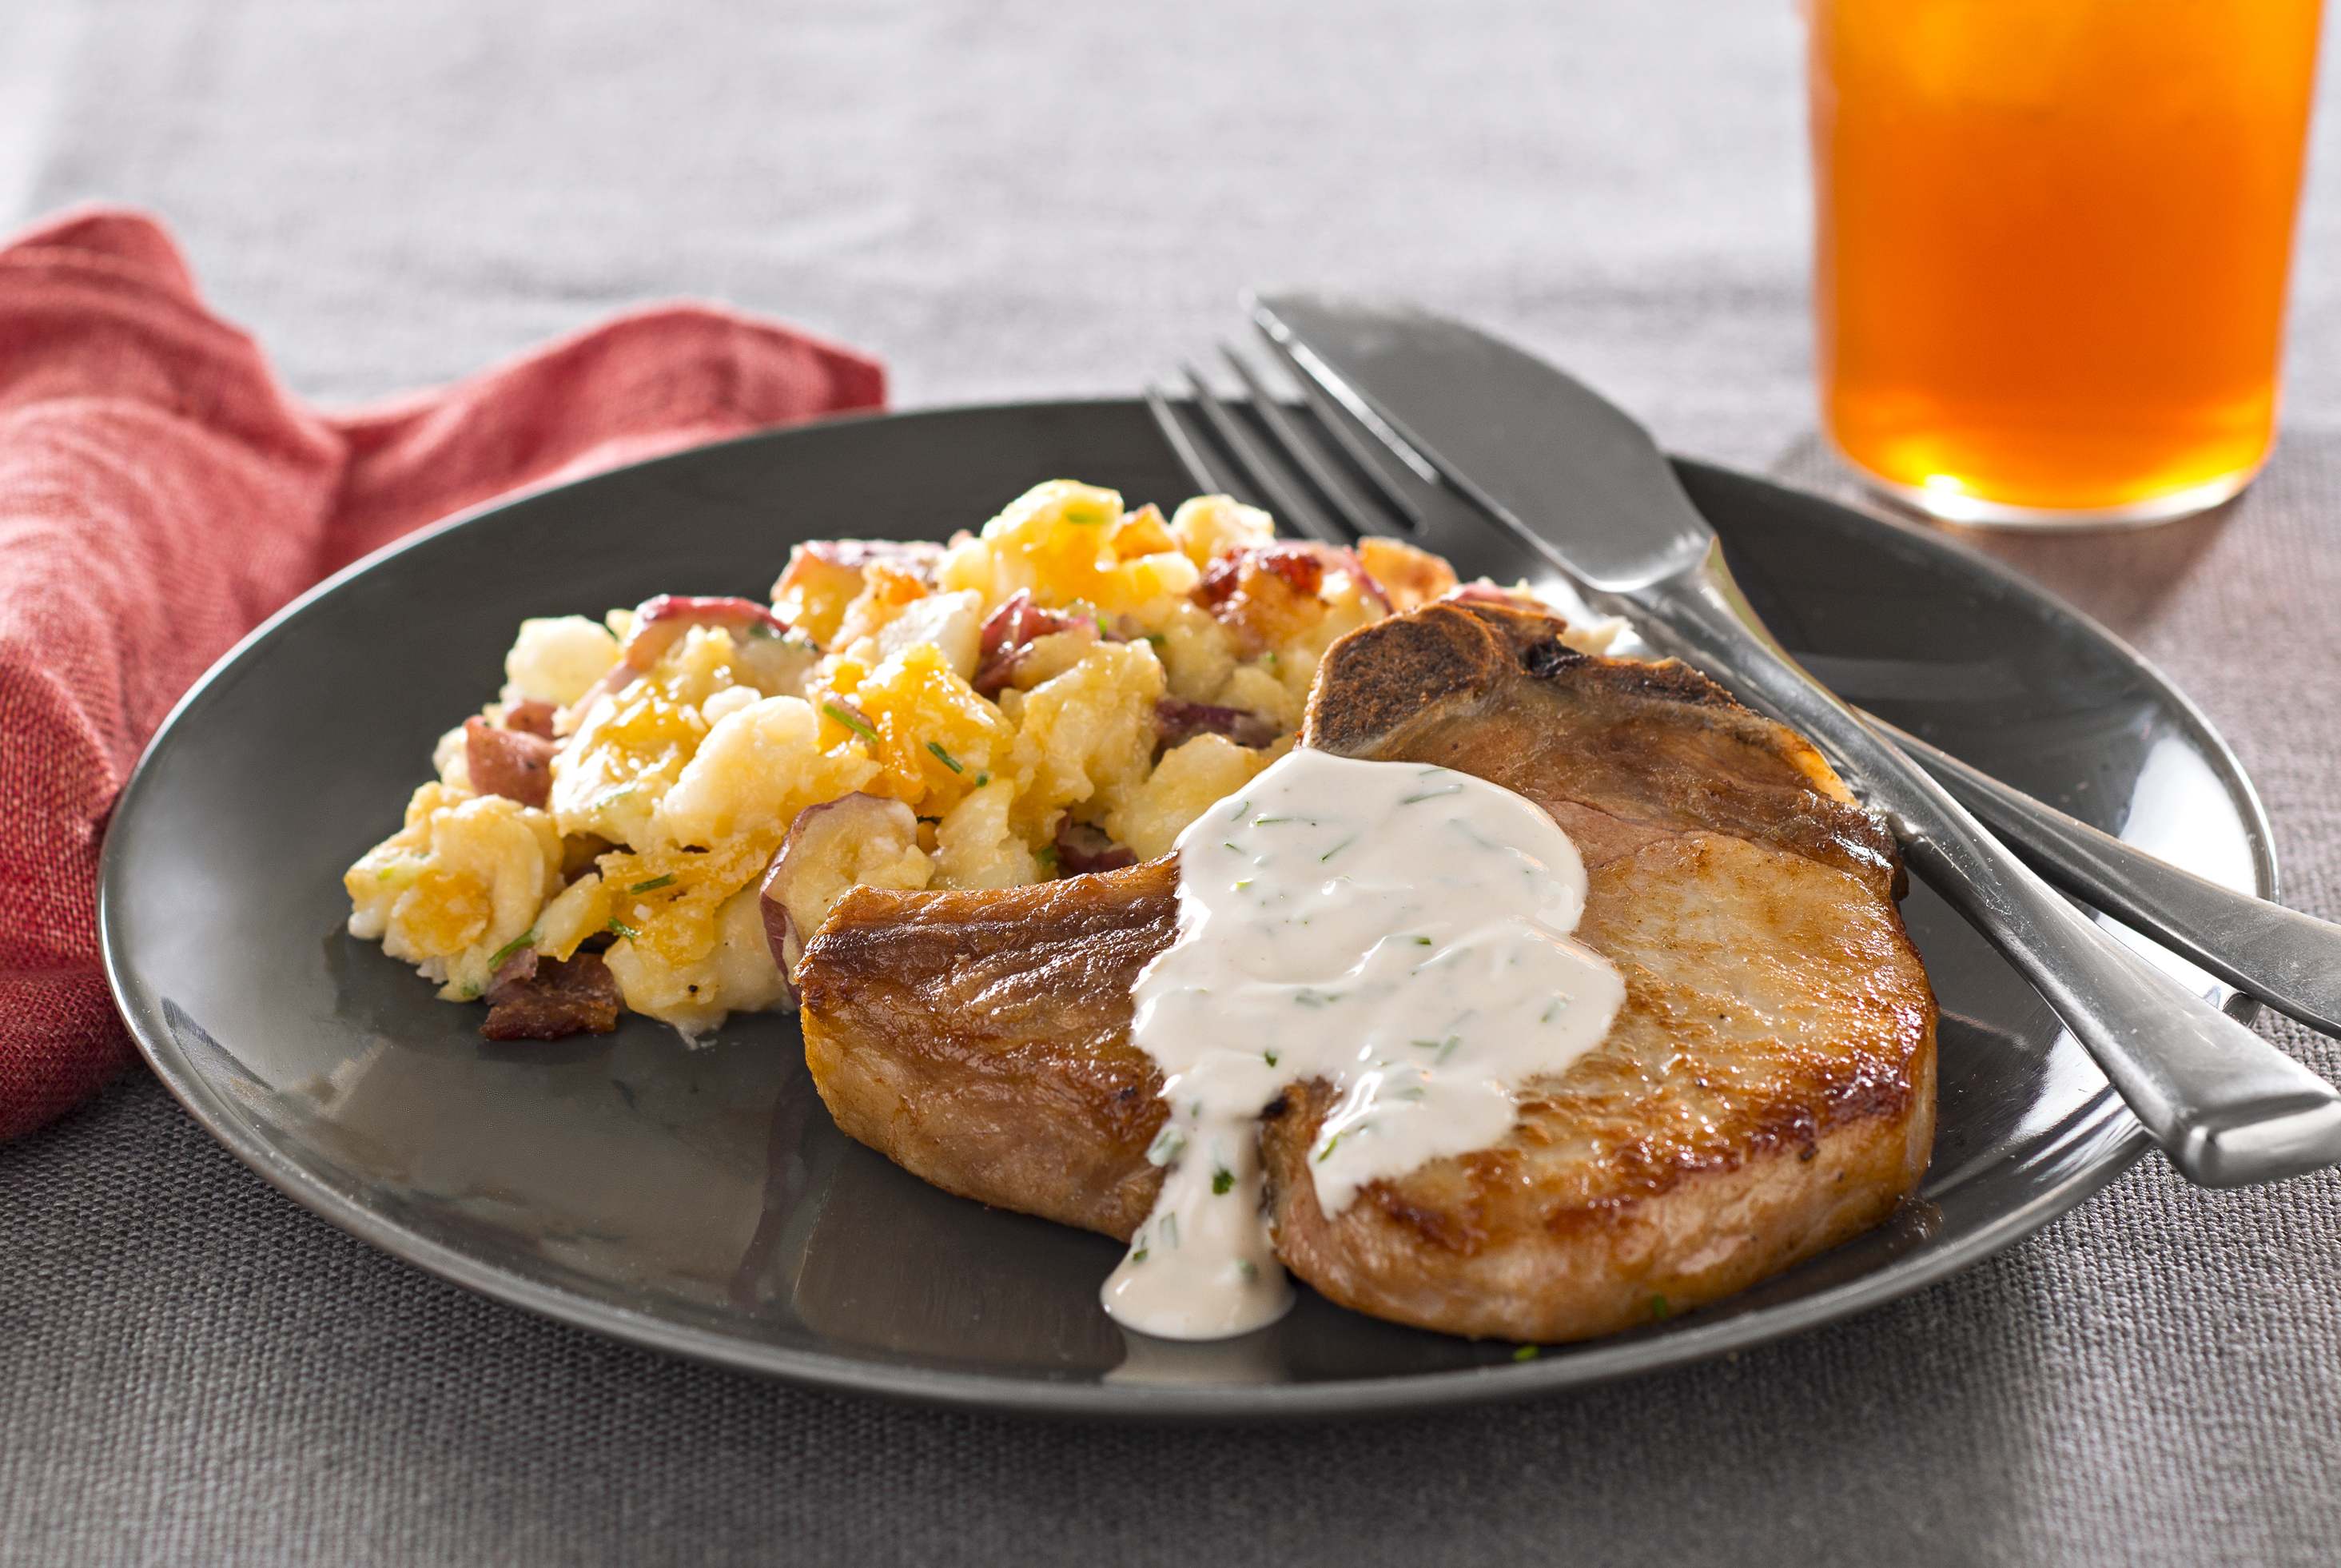 Pork Chops with Fully Loaded Smashed Potatoes Image 1